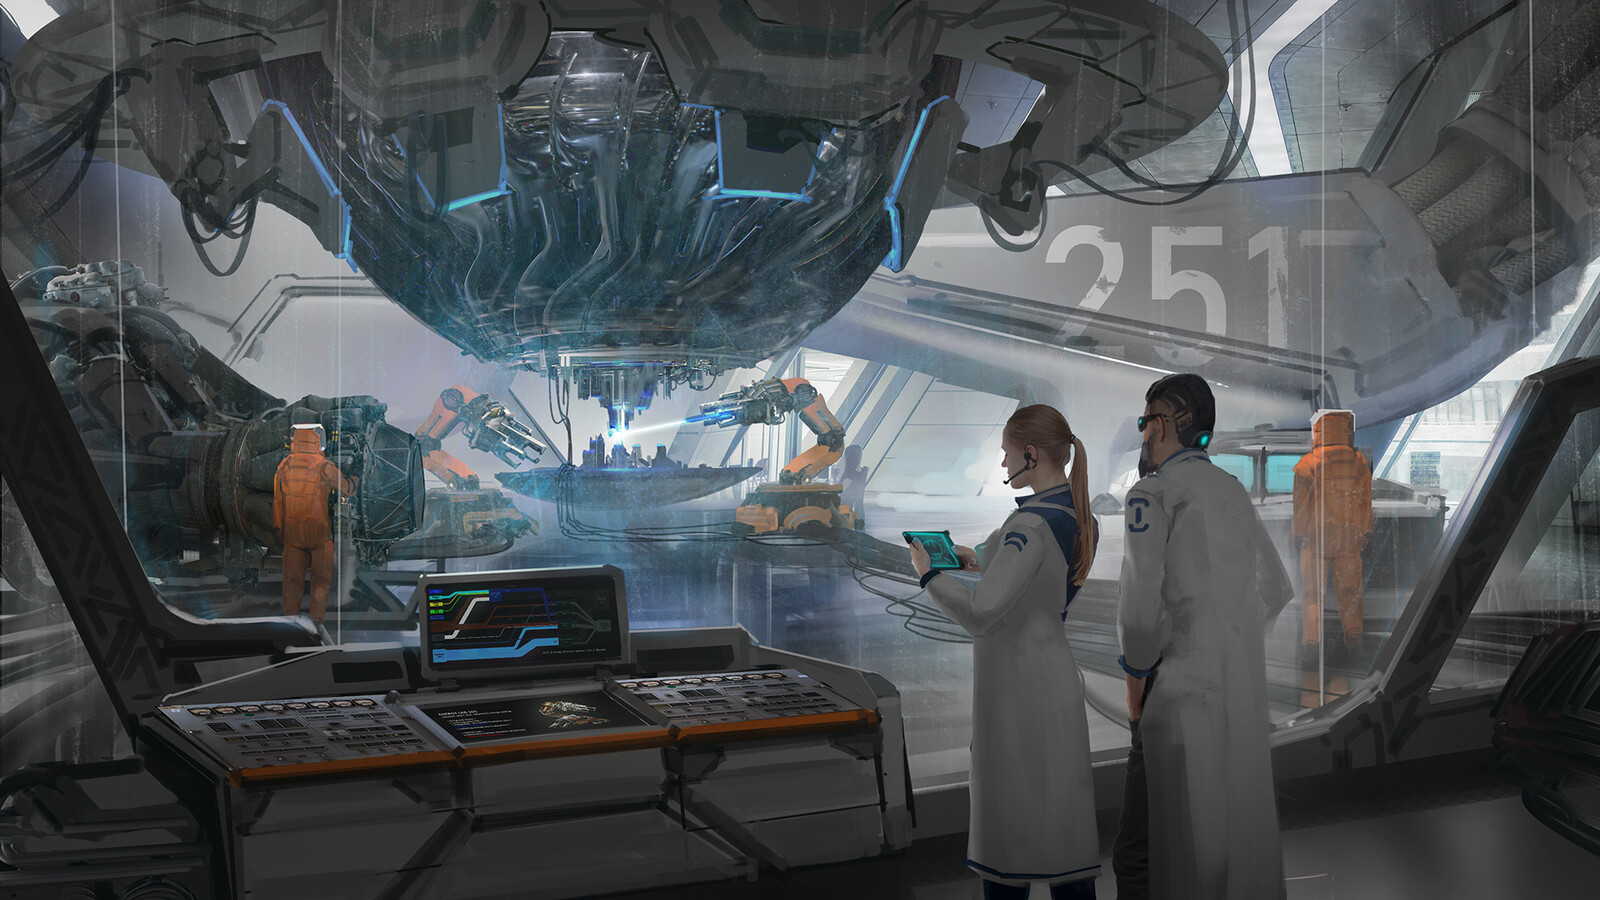 #2 -  The relics then been transfer back to Earth, where the best scientists around the system gather and study the artifacts. This leads to an unexpected found: the alien technologies open the door to FTL (faster than light) travel, and a new way to harv